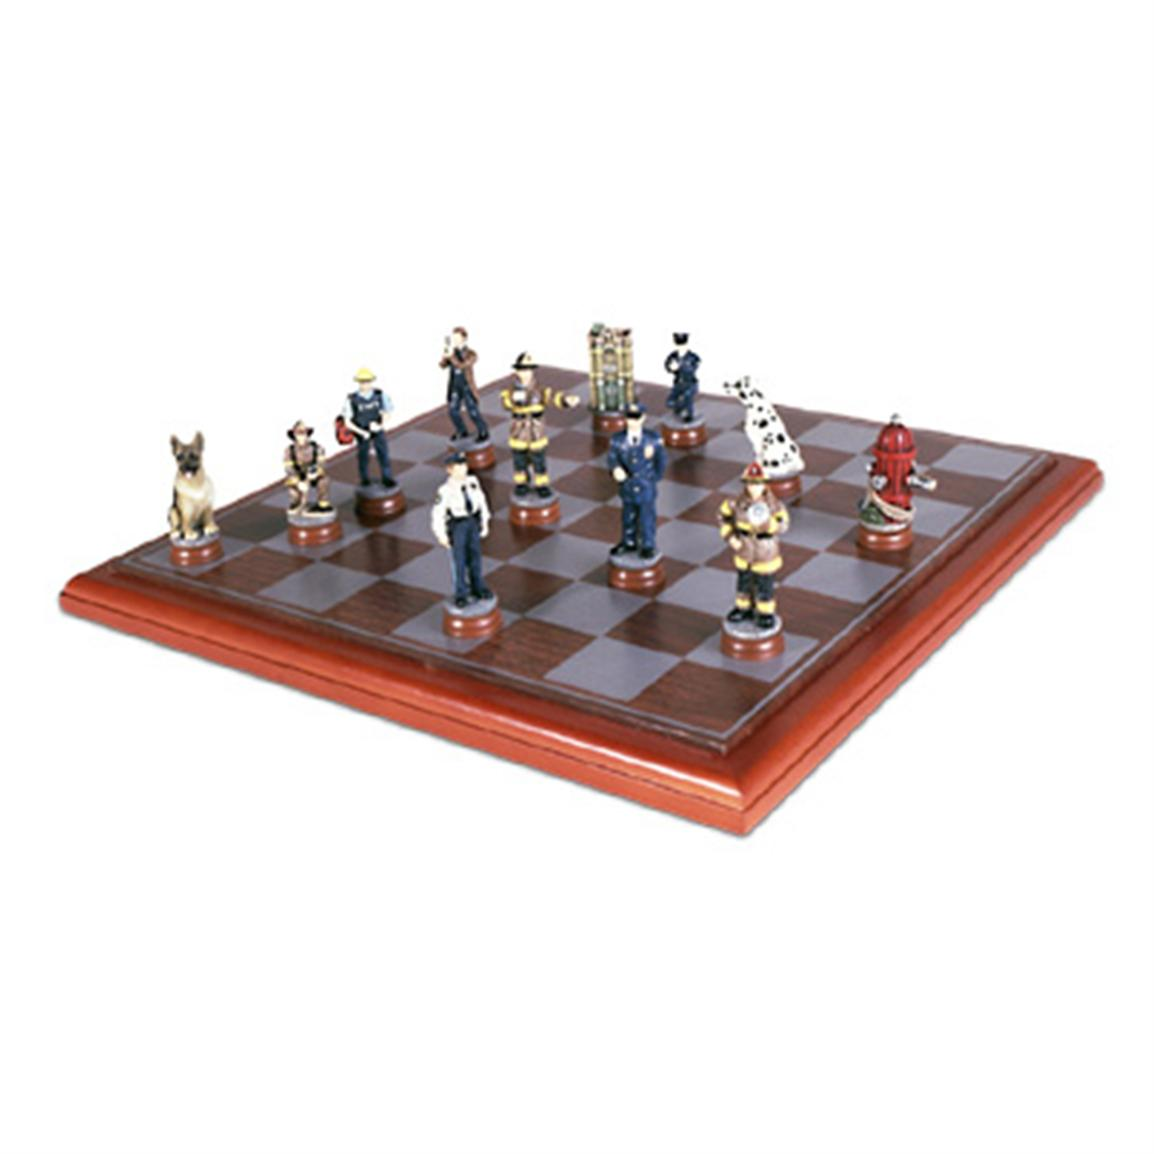 Sunnywood Police / Firemen Chess Set